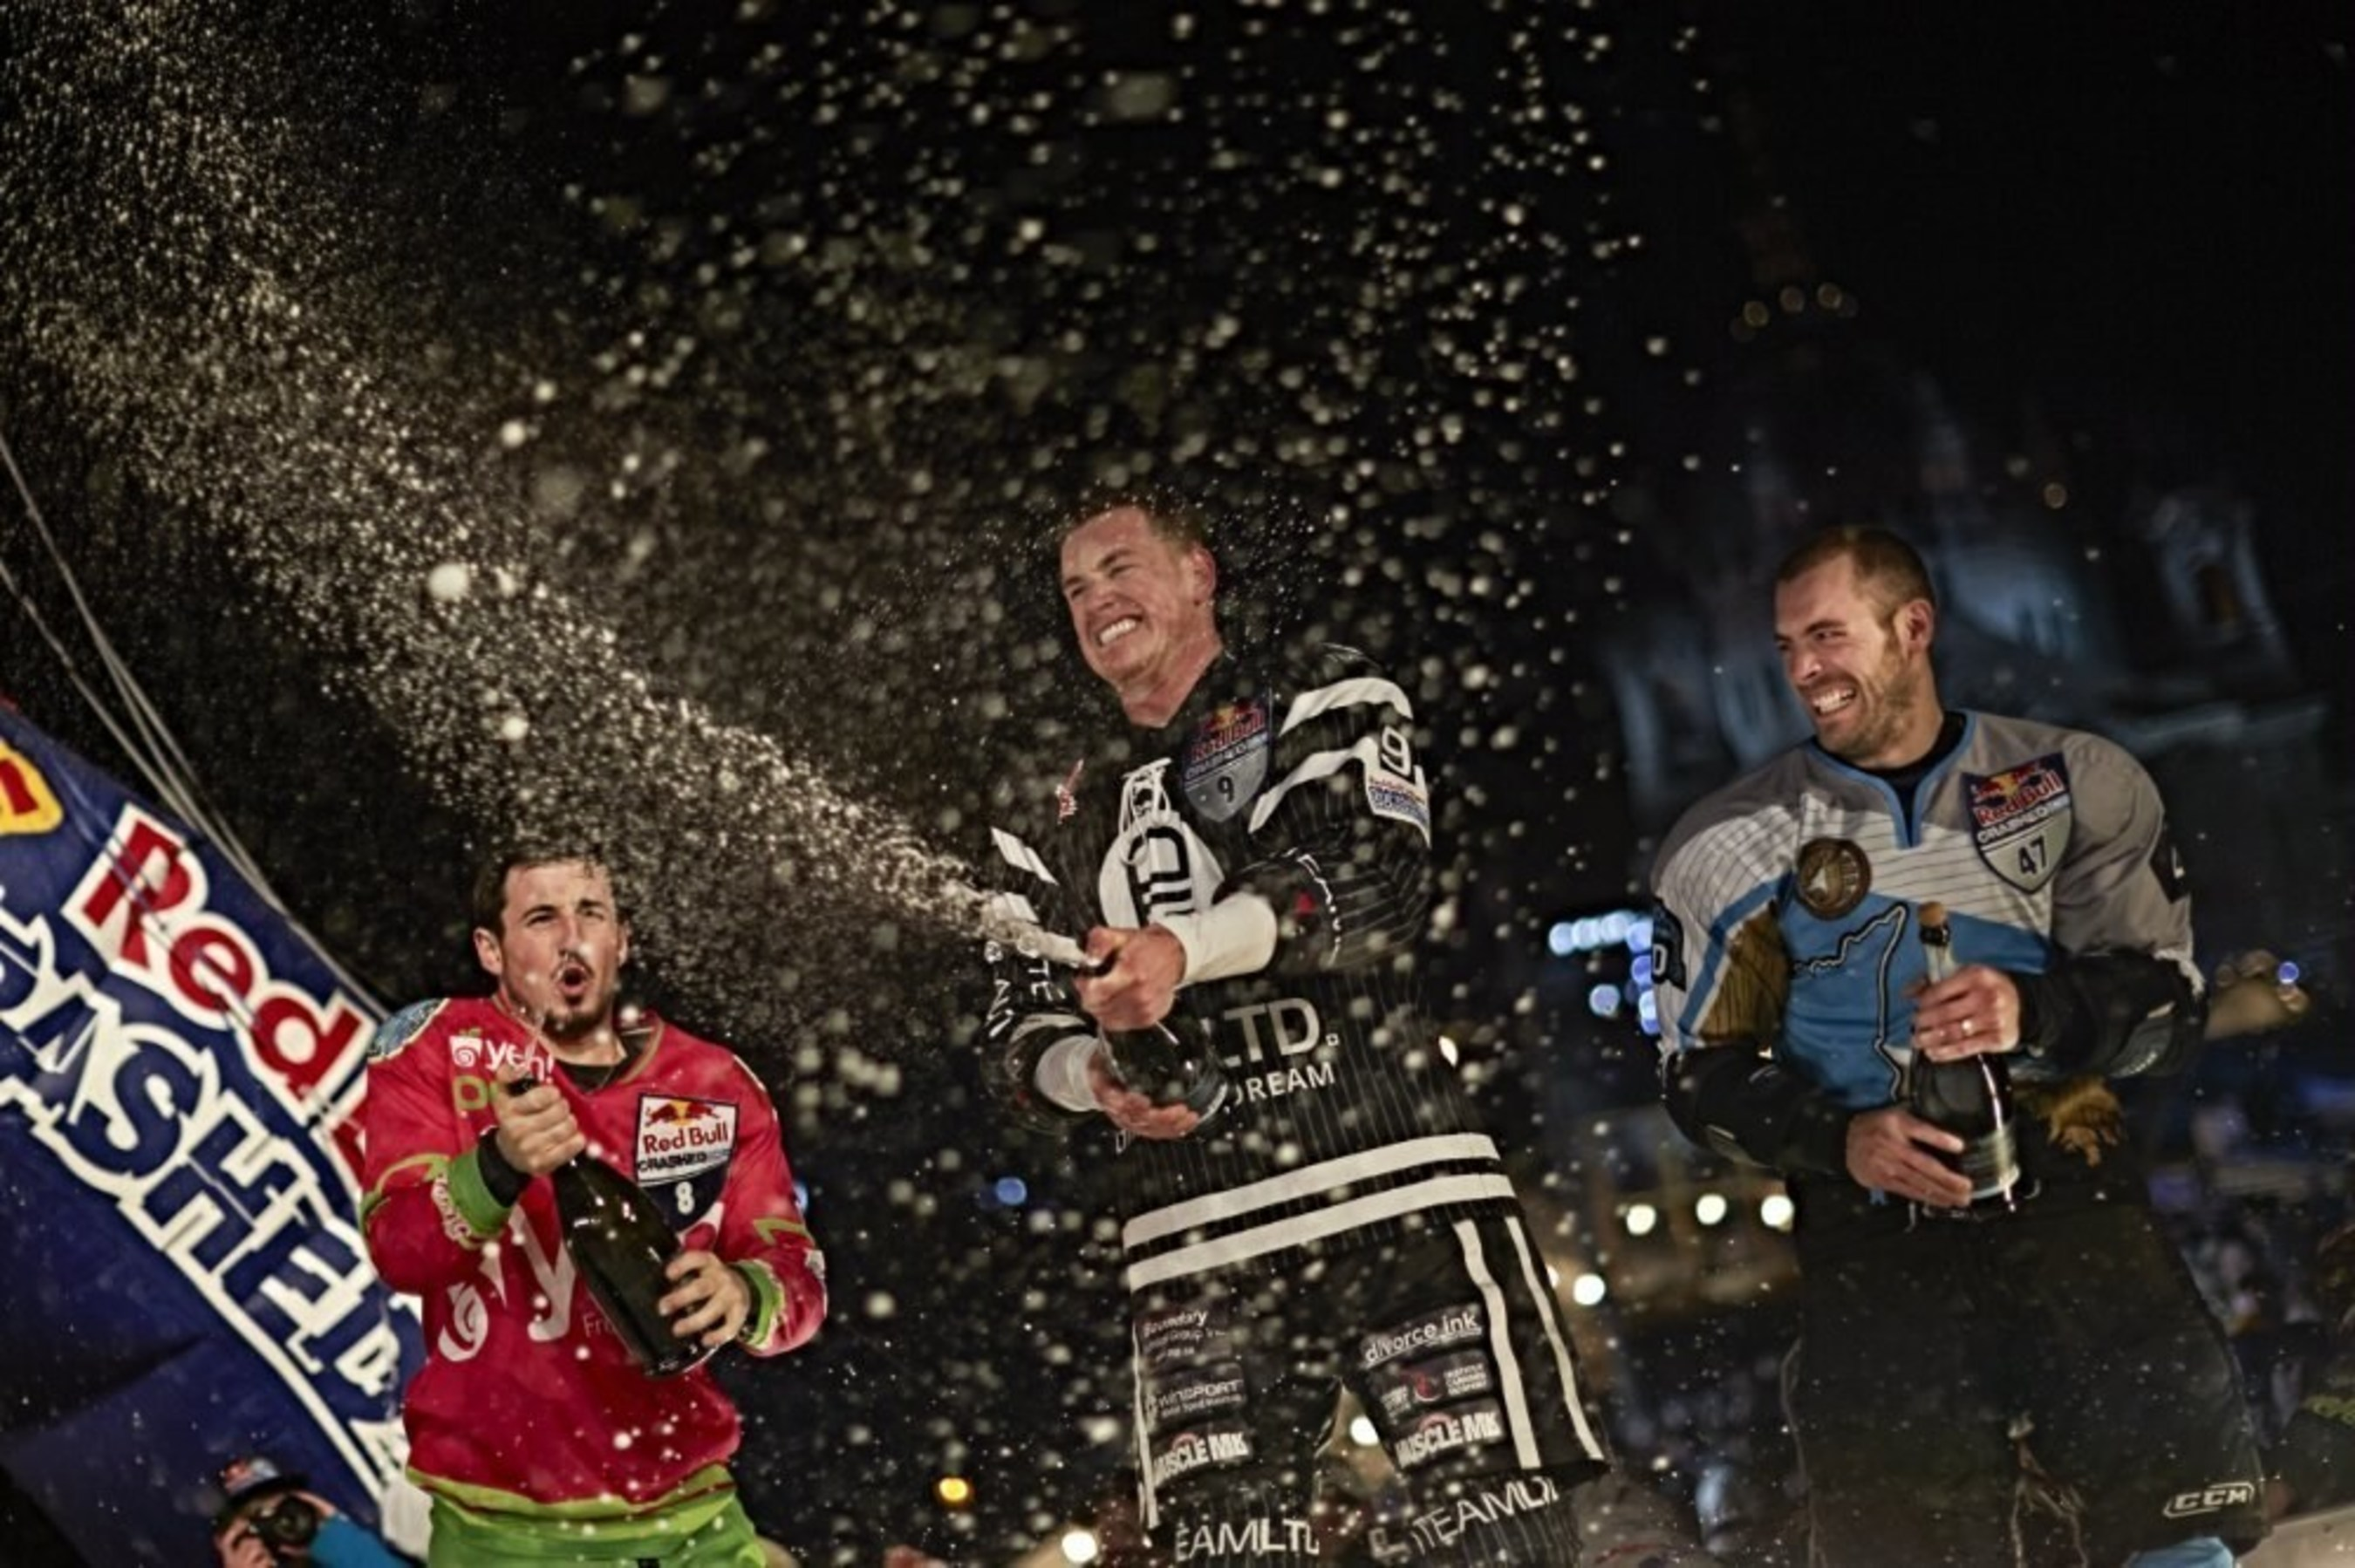 Kyle Croxall grabs third victory in four years at Red Bull Crashed Ice Saint Paul 2015.